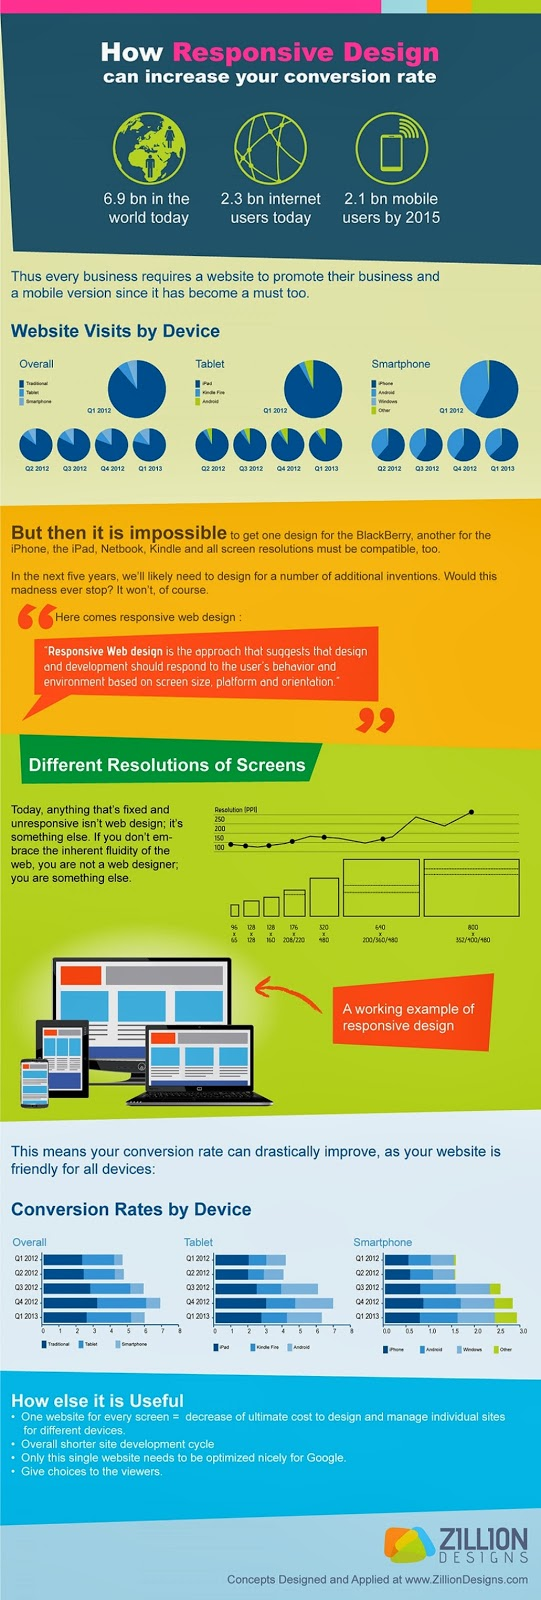 How Responsive Design Can Effect Your Conversion Rate